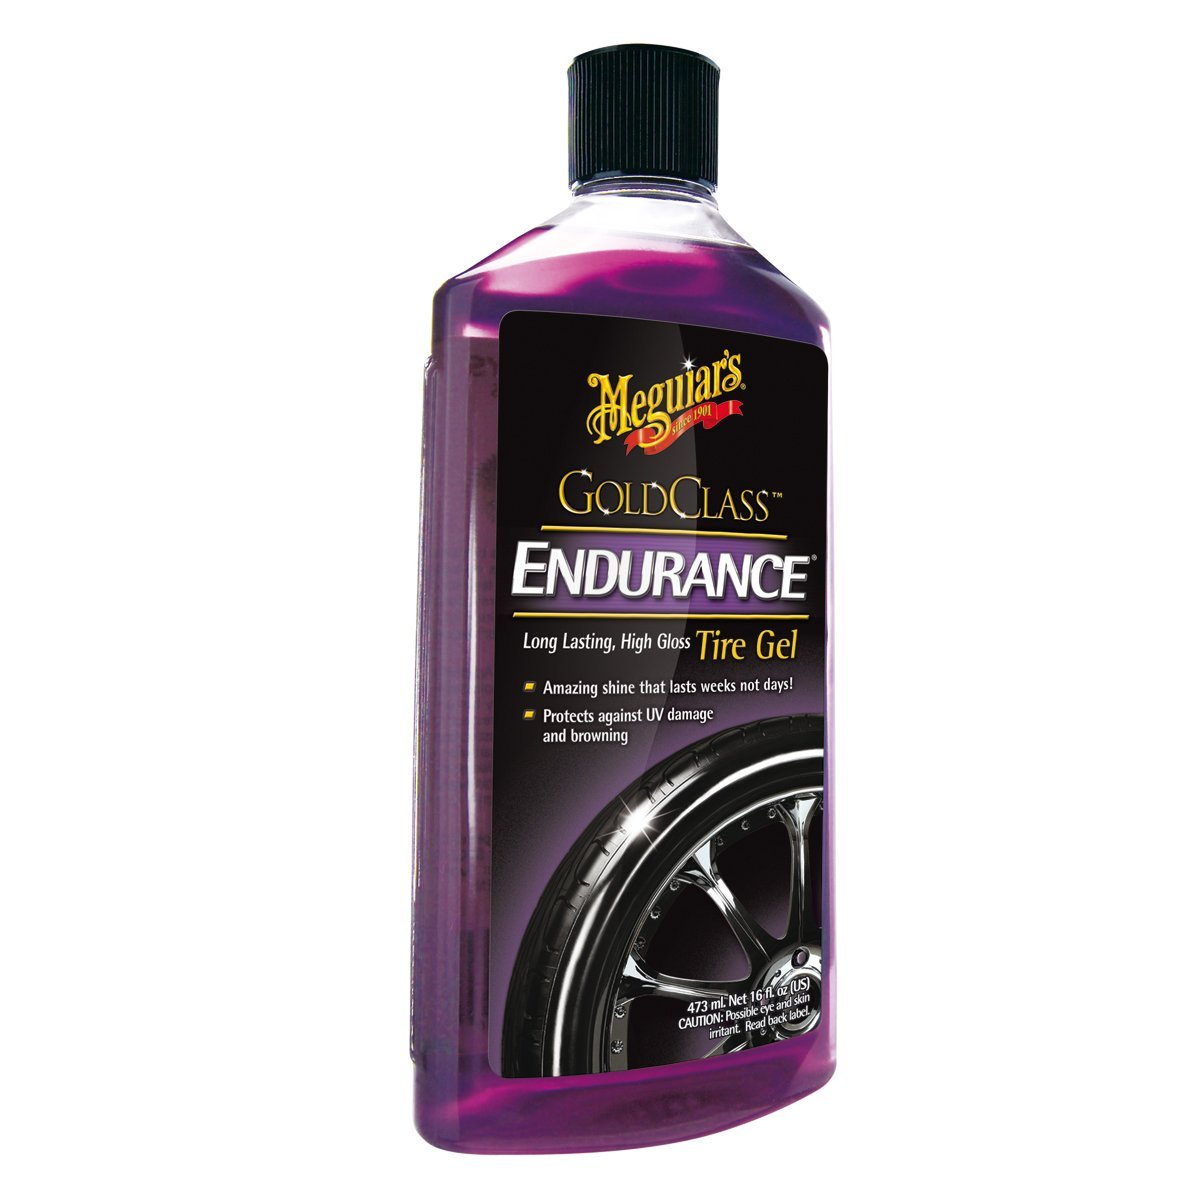 Meguiar's G7516 Endurance Tire Gel - 16 oz. (5 Pack)